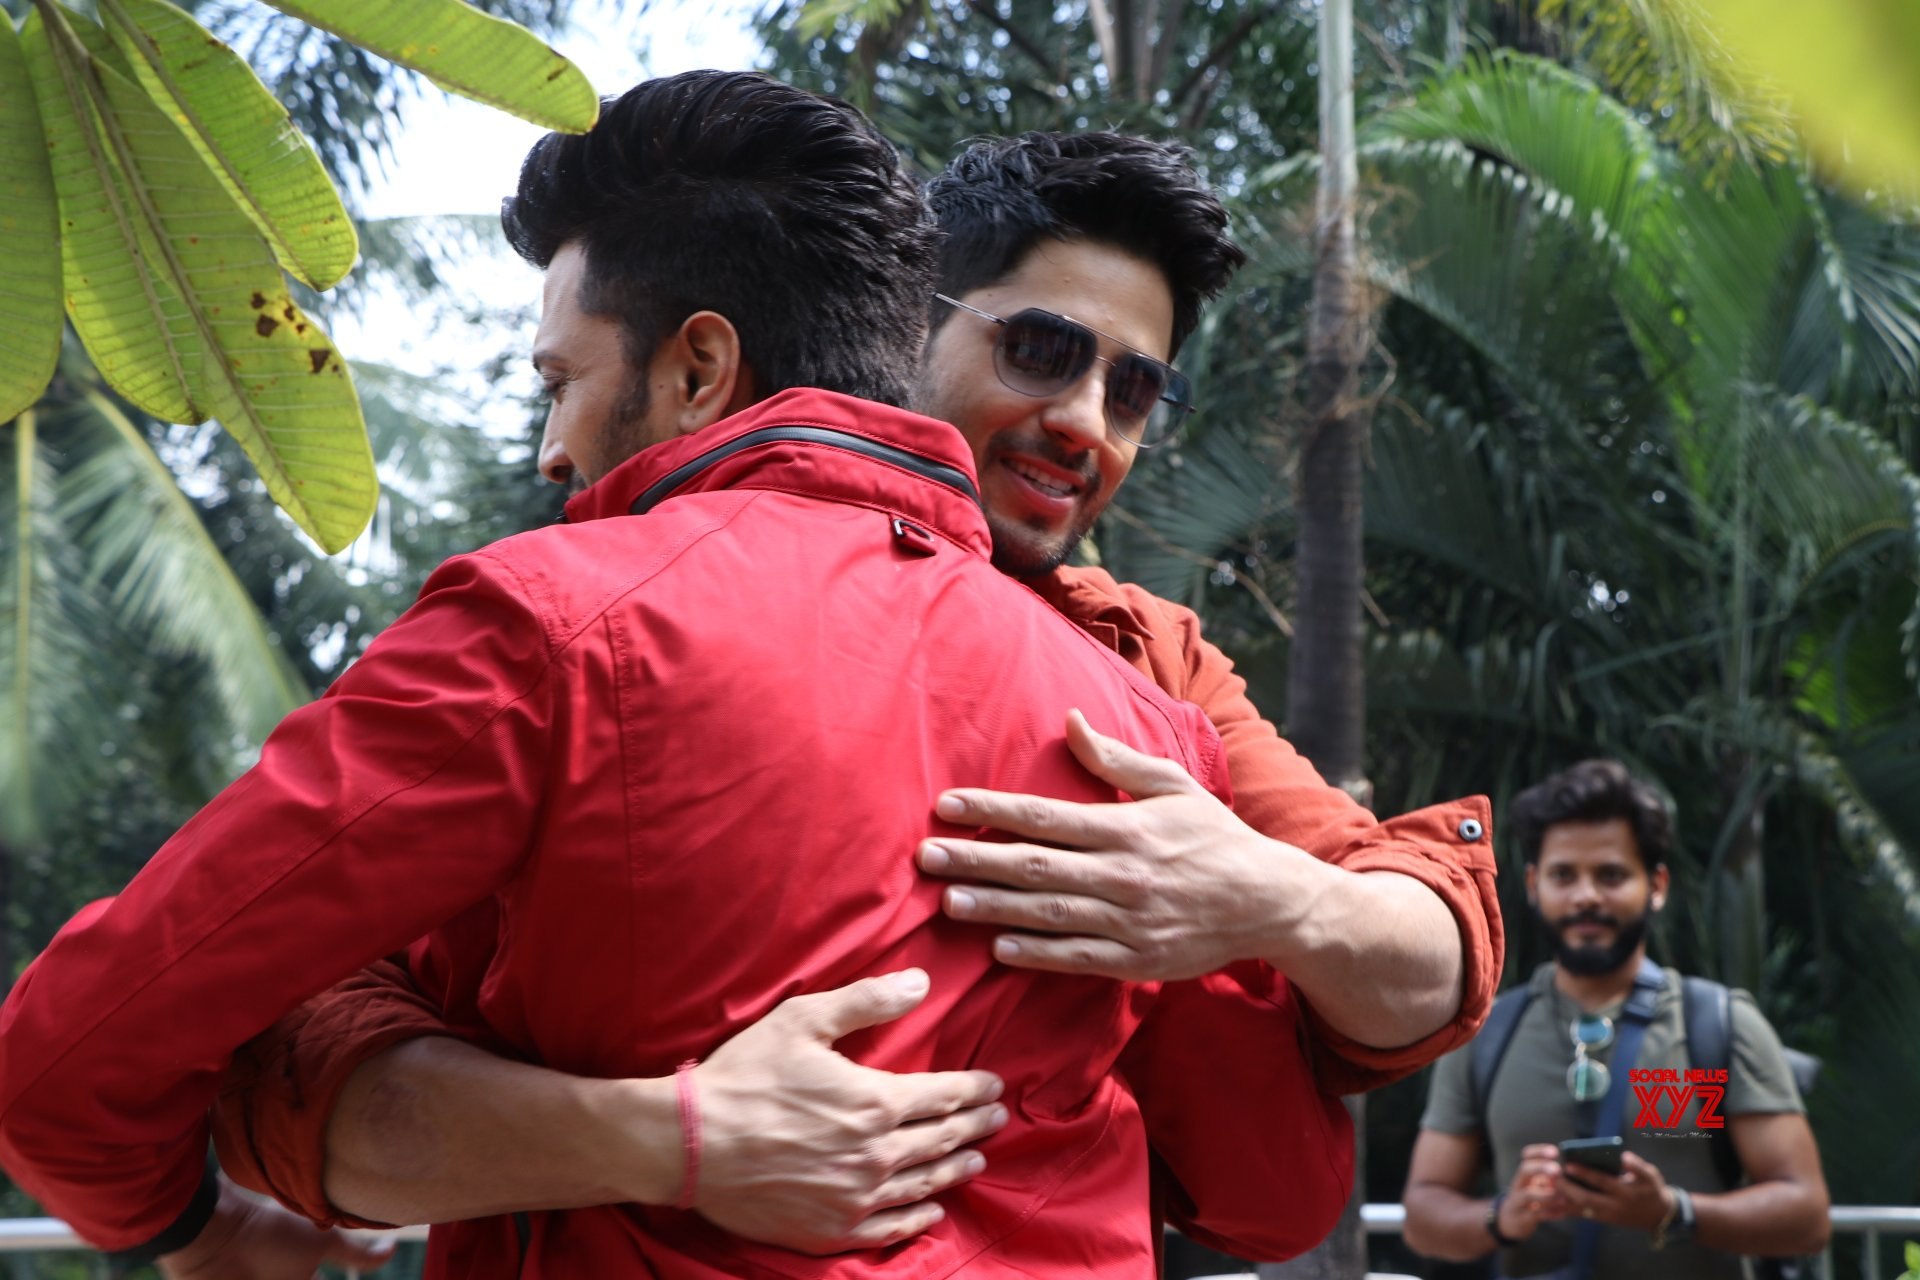 Riteish Deshmukh And Siddharth Malhotra Spotted At Novotel For Promoting Their Film Marjaavaan Gallery